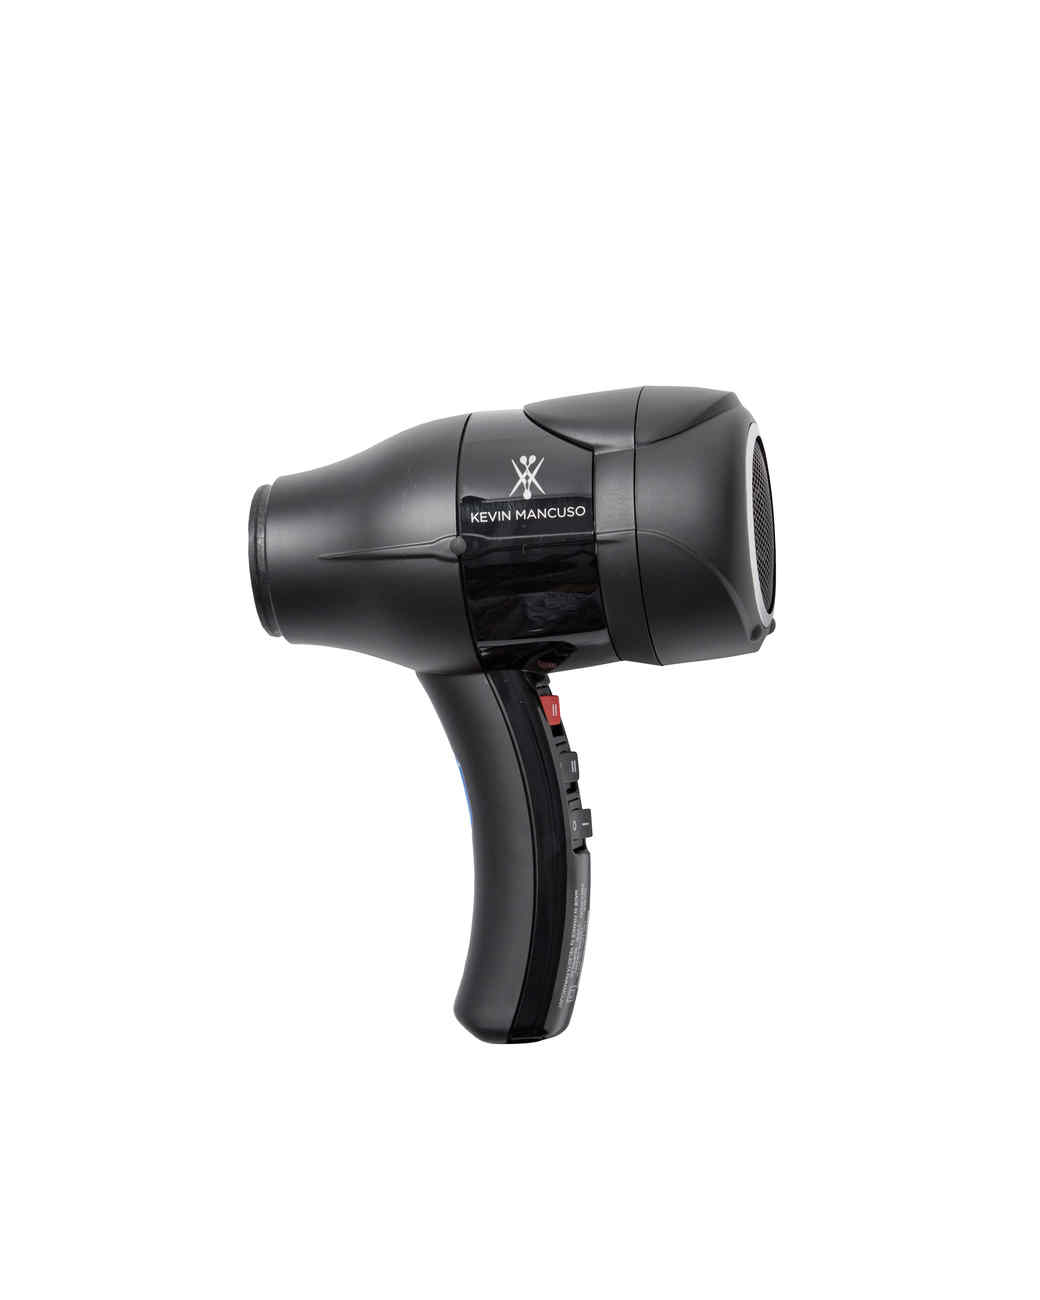 kevin-mancuso-blow-dryer-4950-d112774.jpg